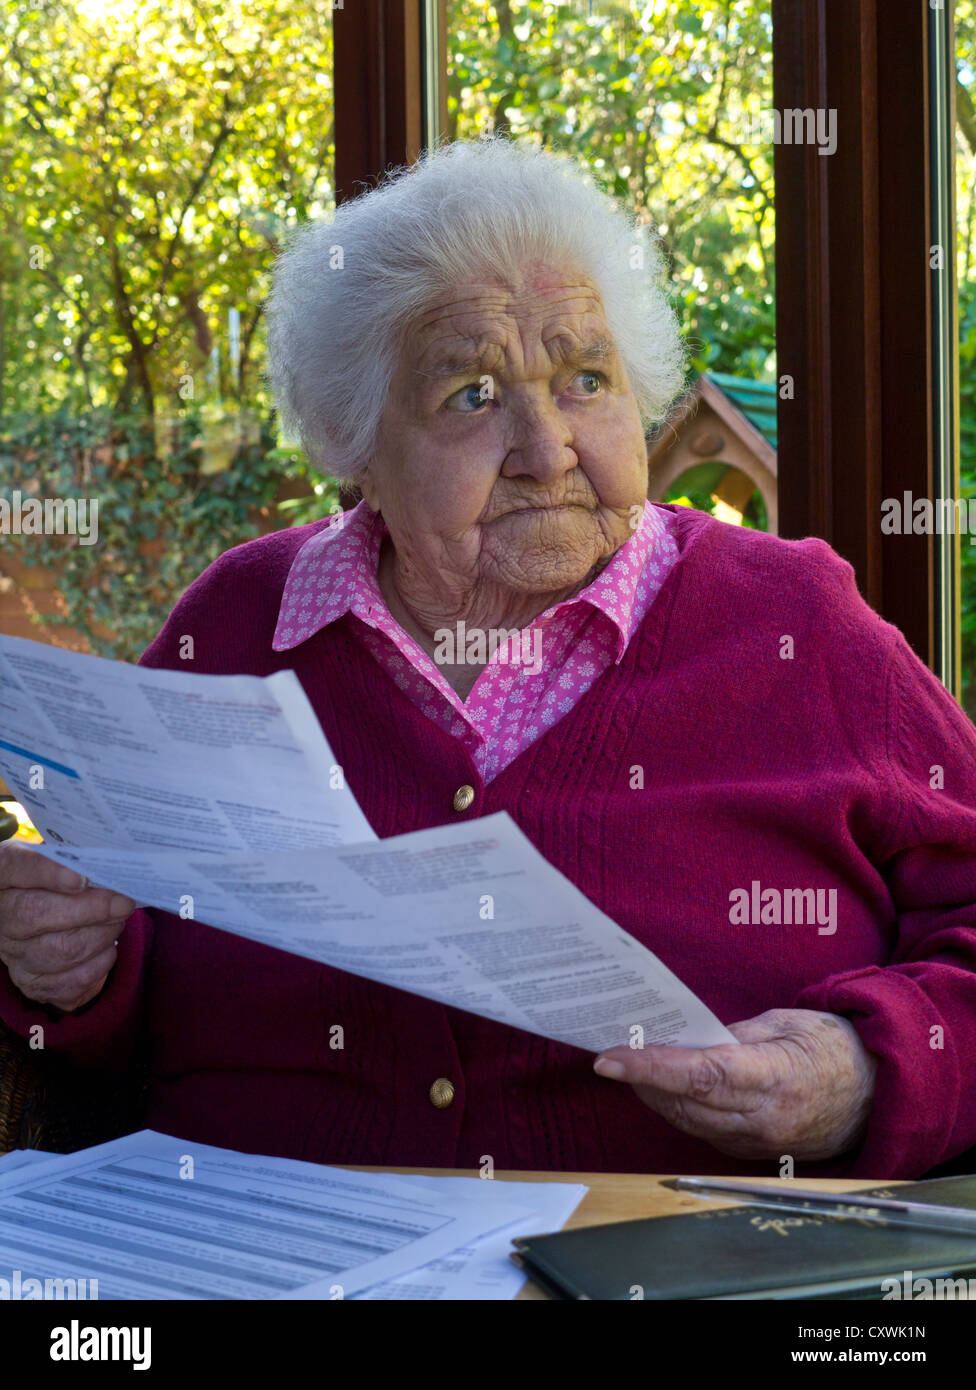 Concerned elderly senior lady at home reading and  contemplating her latest financial statements and bills - Stock Image